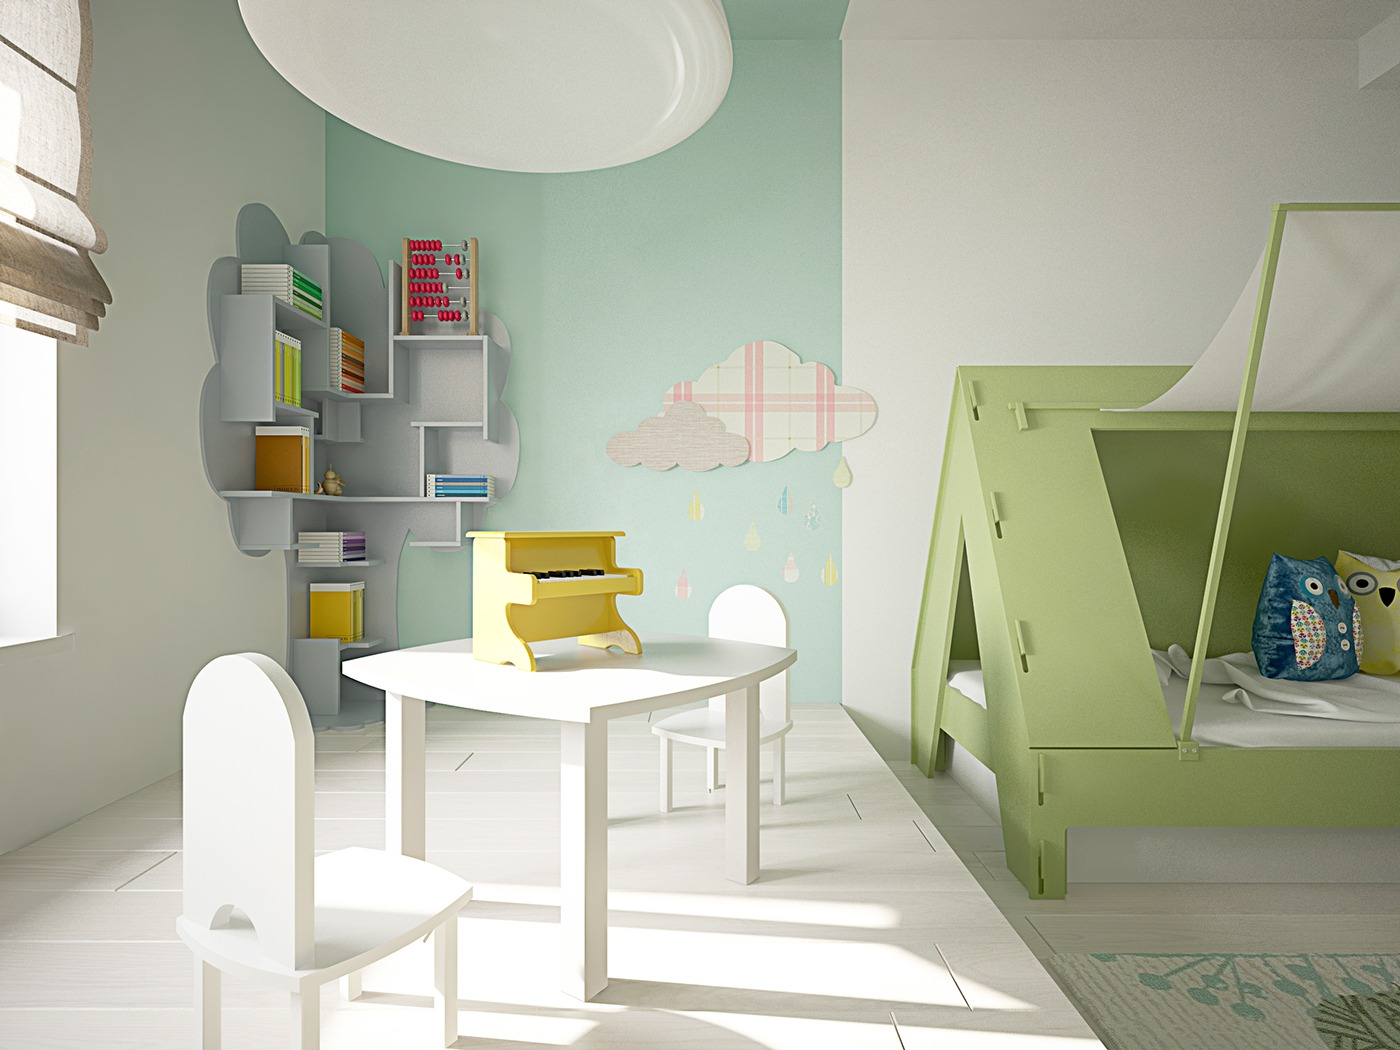 Bedroom designer for kids - Bedroom Designer For Kids 47